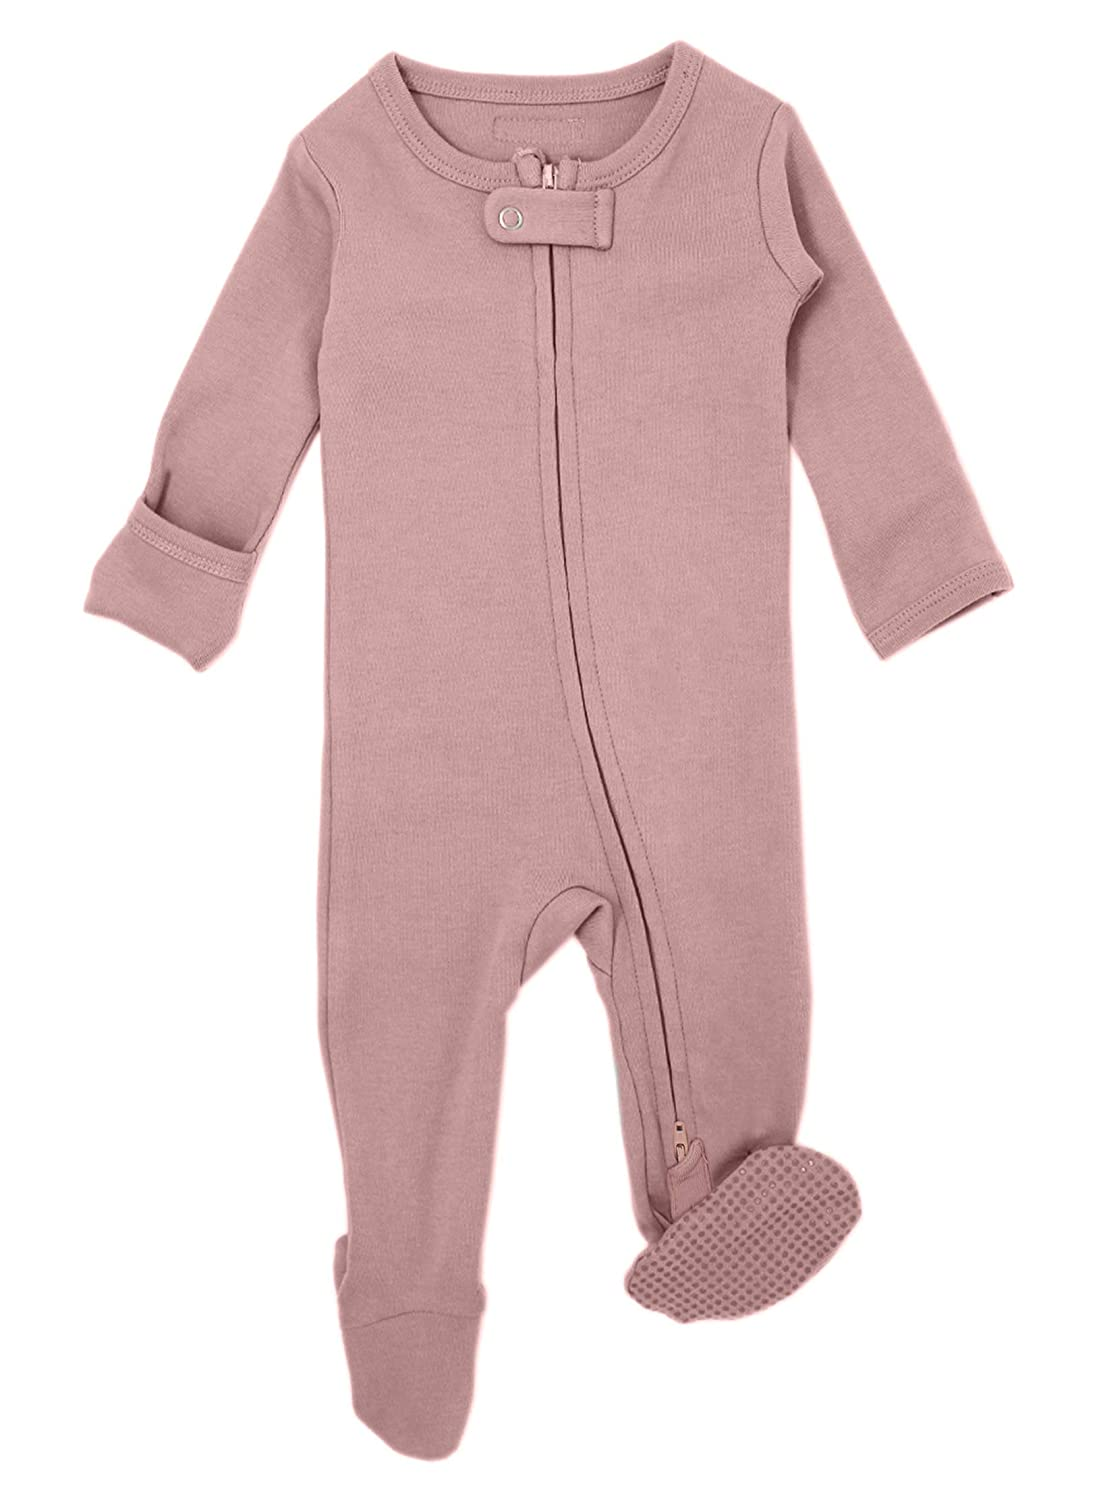 Lovedbaby Unisex Baby Organic Zippered Footed Overall